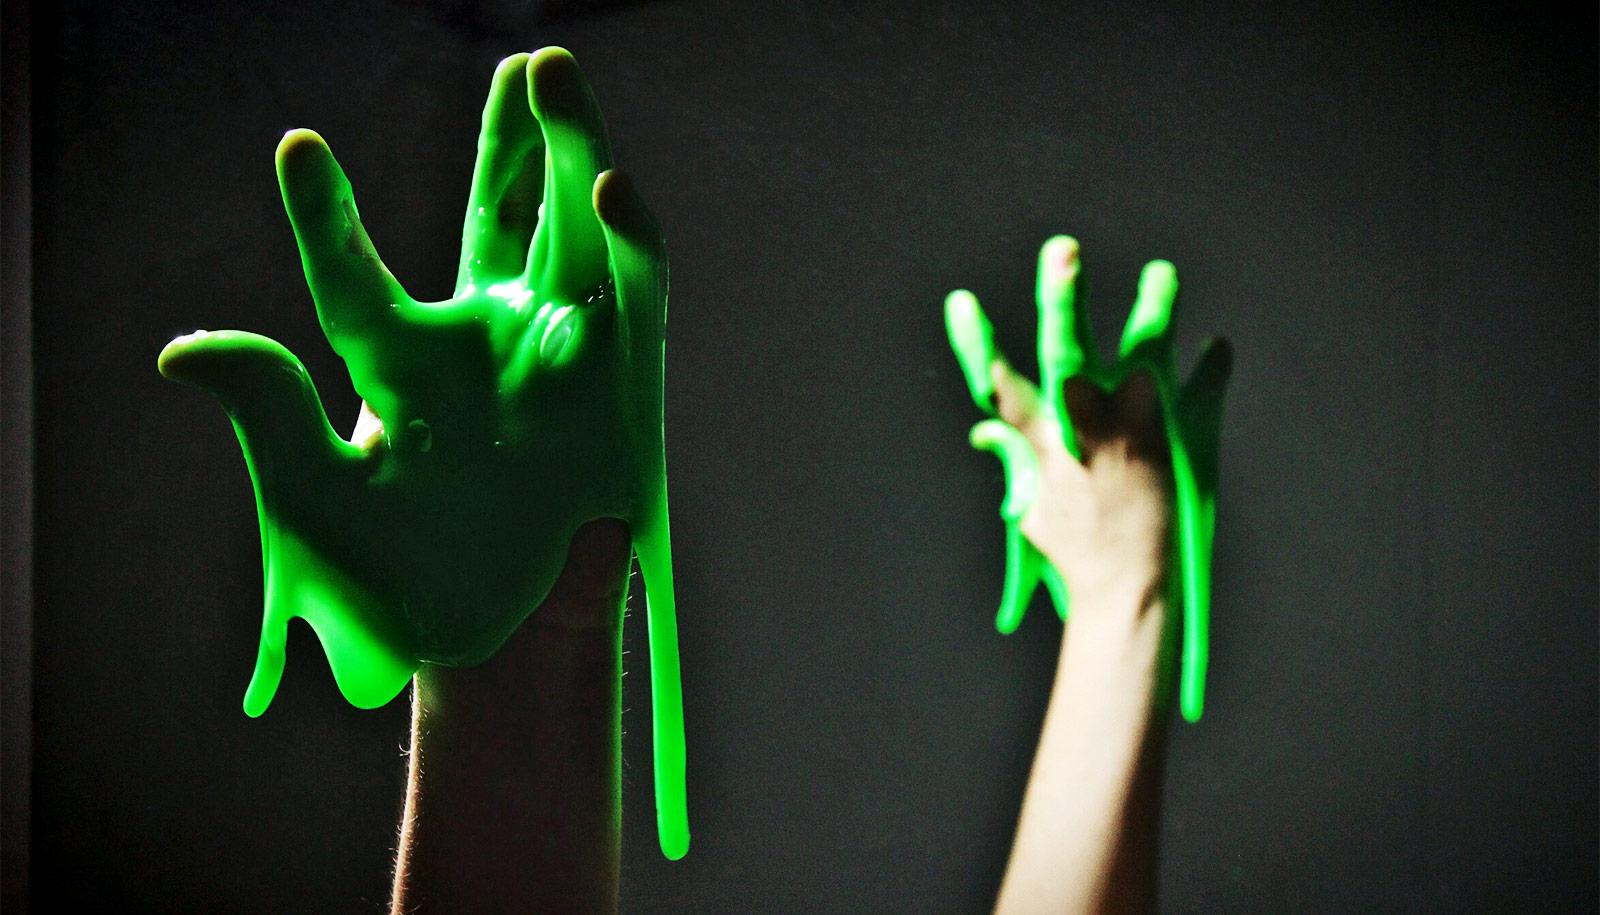 Bright green slime drips from a hand, which is also mirrored in the background